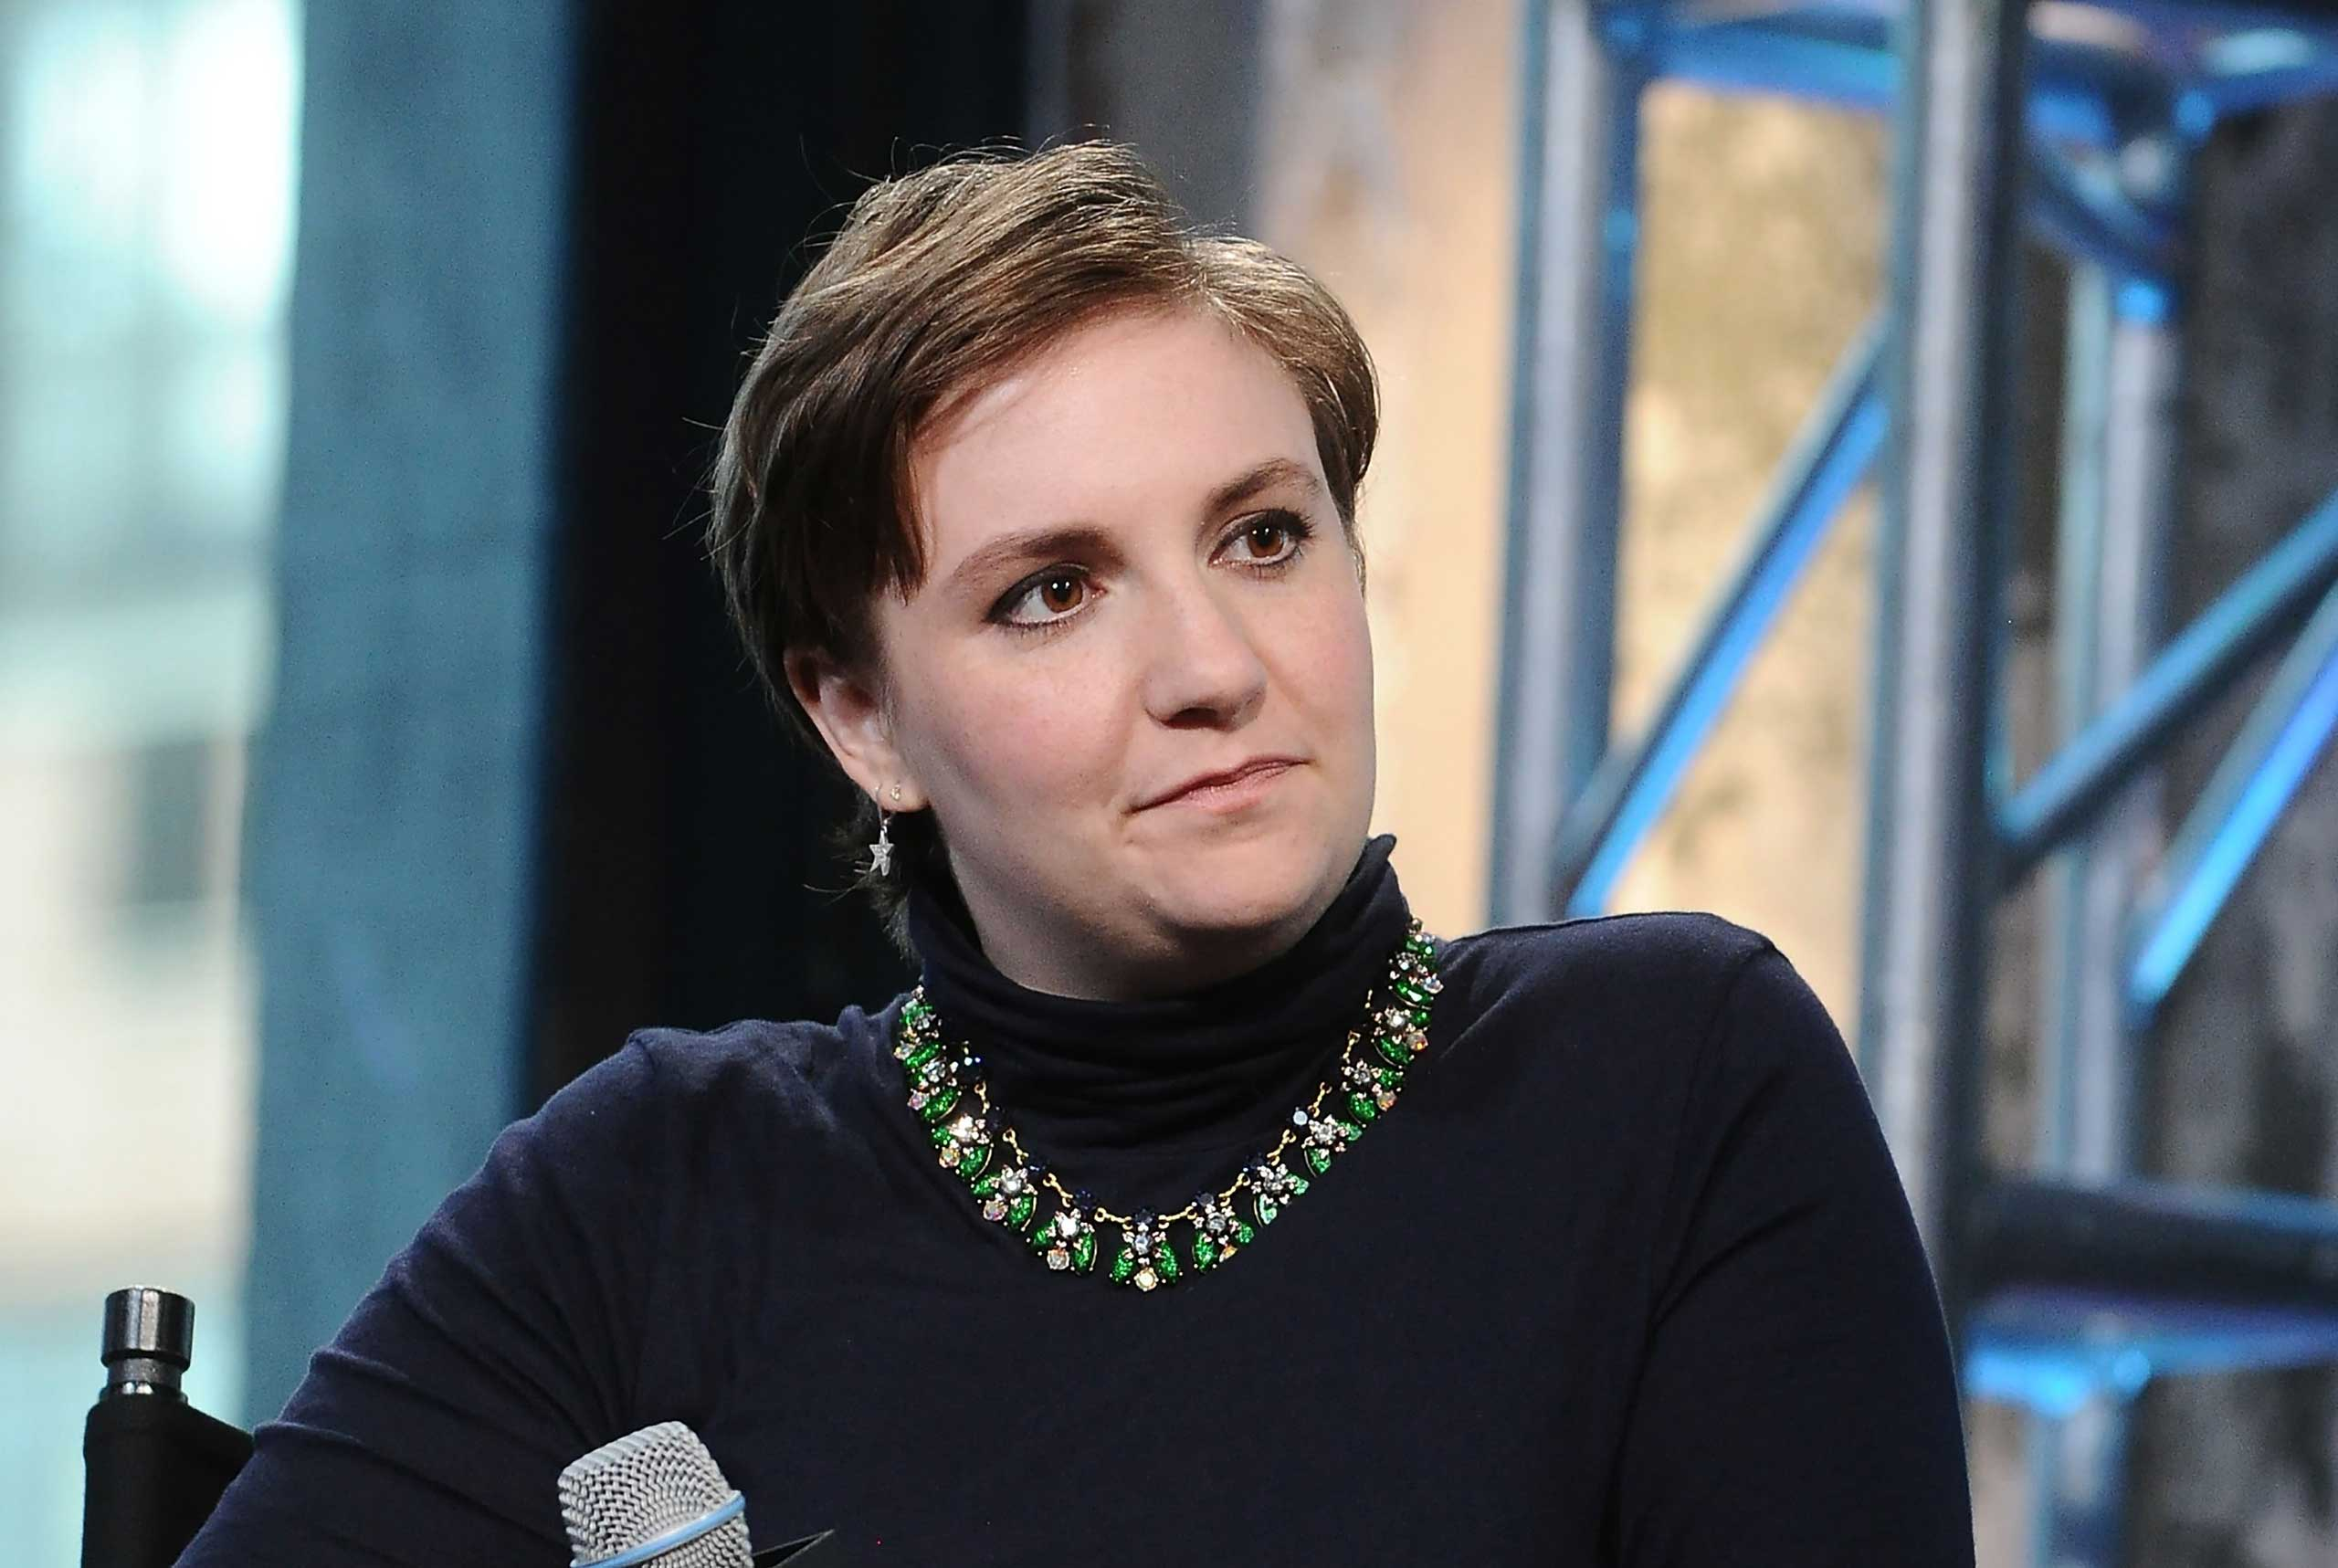 Lena Dunham in New York City, on Sept. 24, 2015.